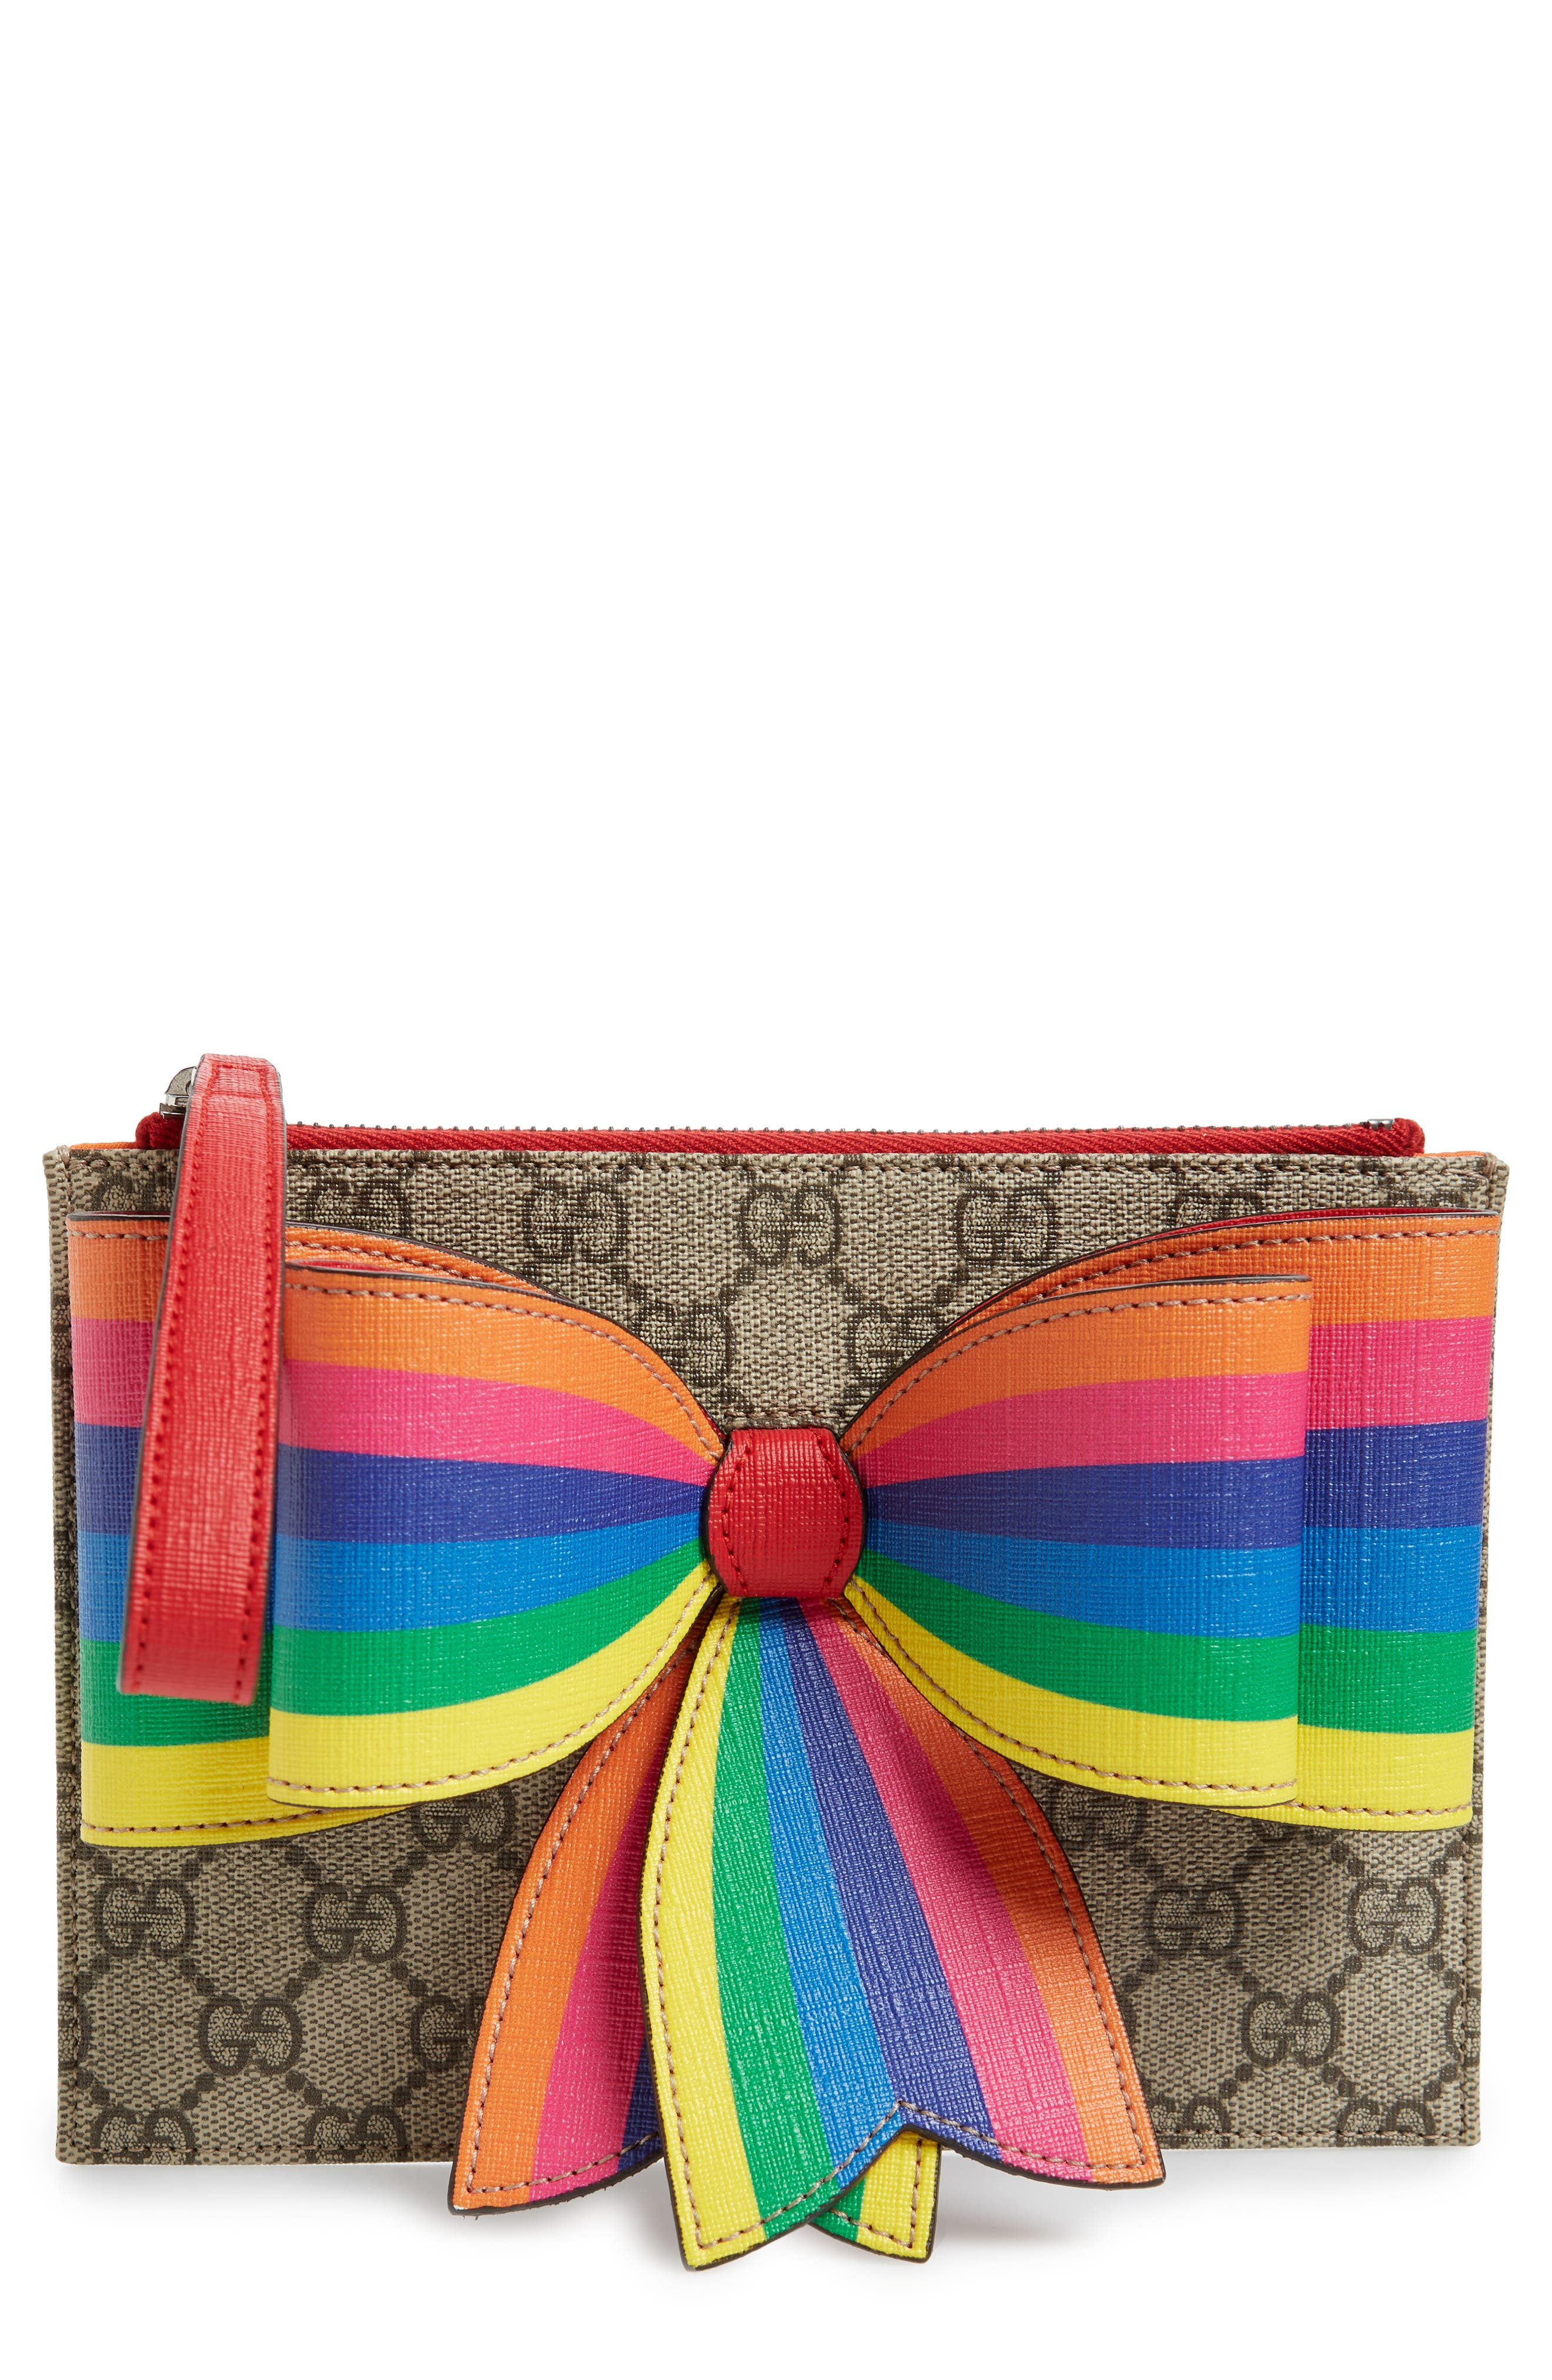 Borsa Bow Wristlet,                             Main thumbnail 1, color,                             283